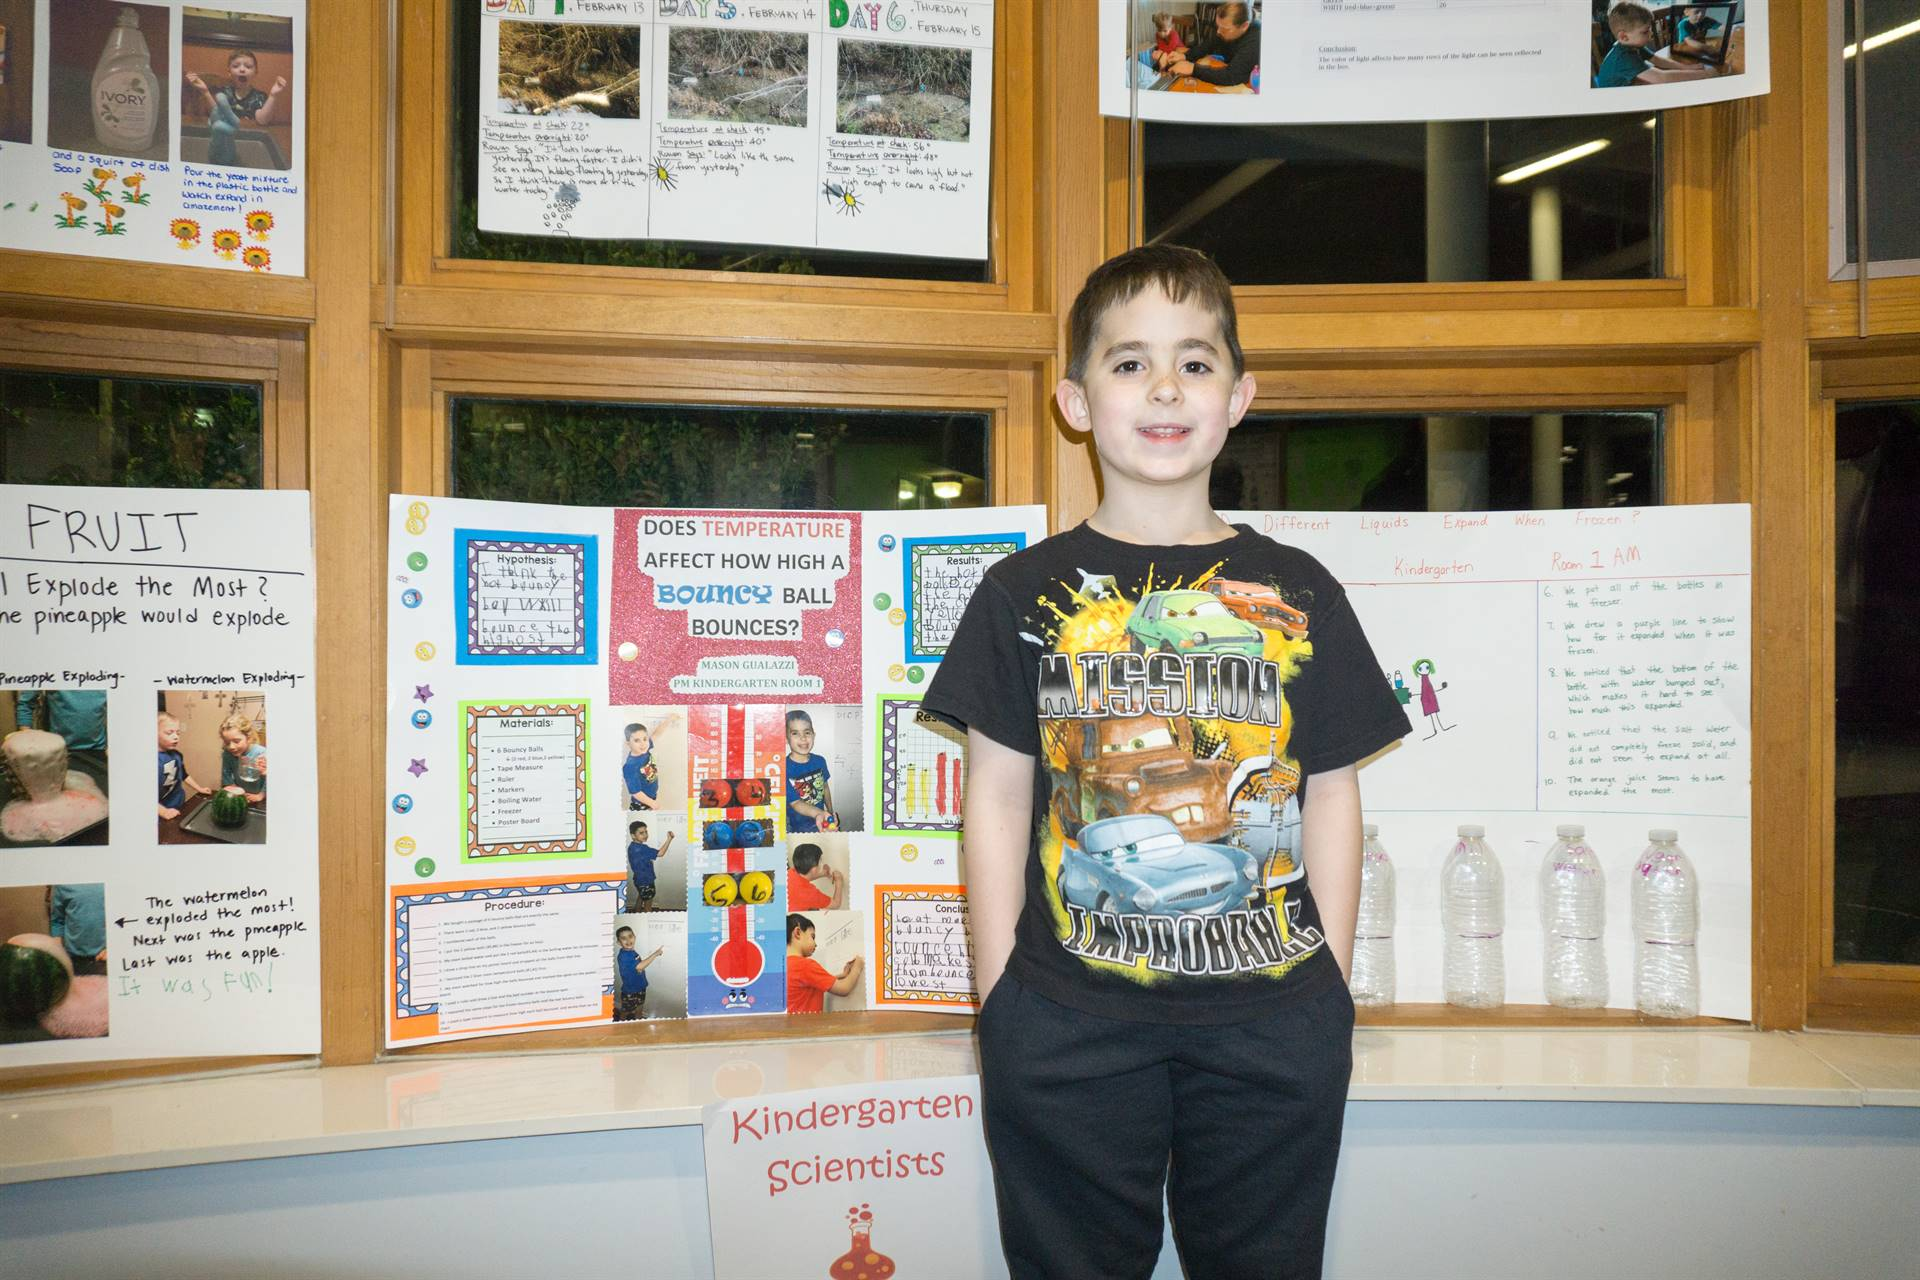 Student with his project at the Science Fair